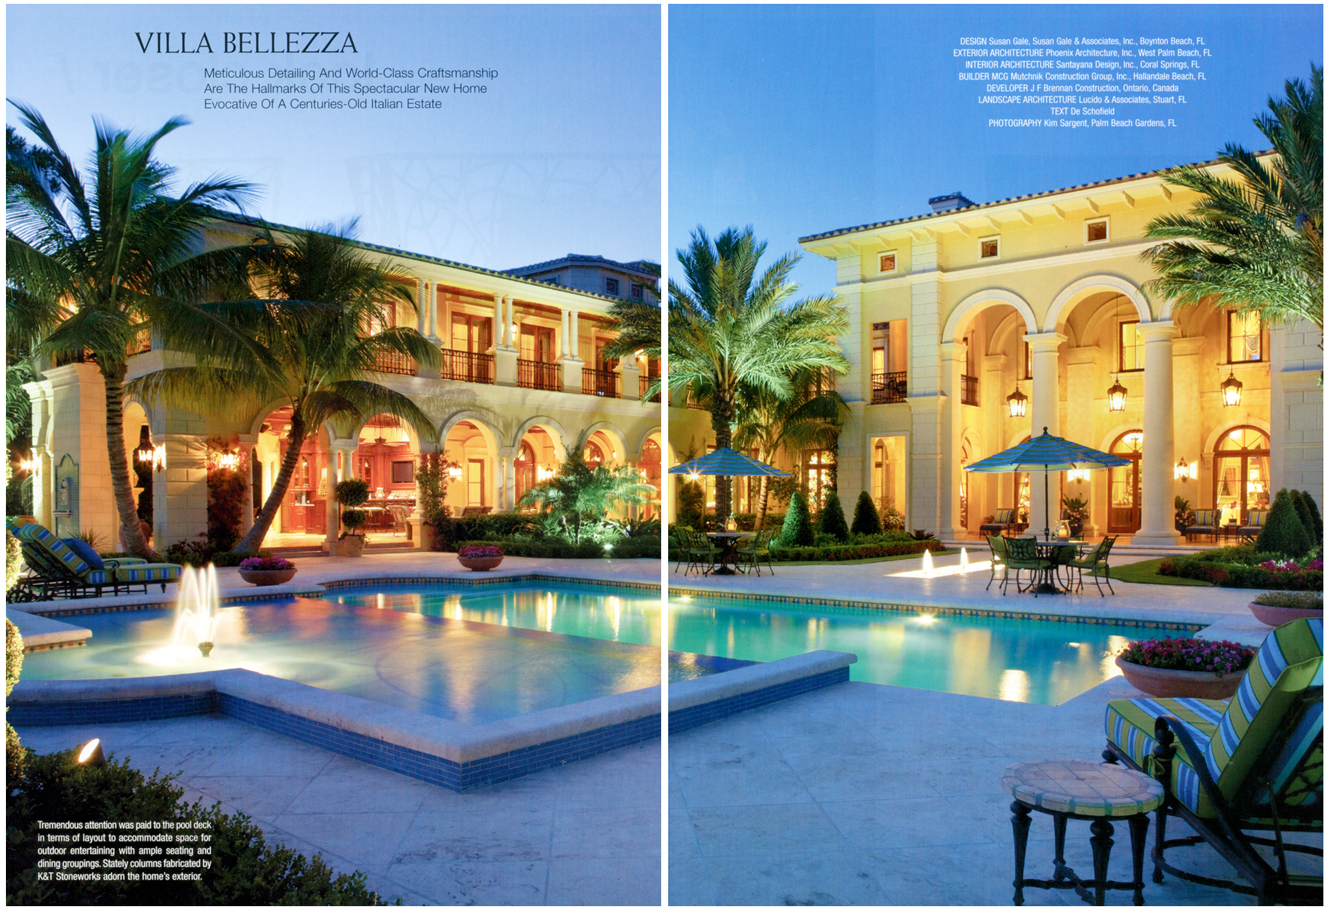 Florida design vol 20 4 villa bellezza for Architect florida